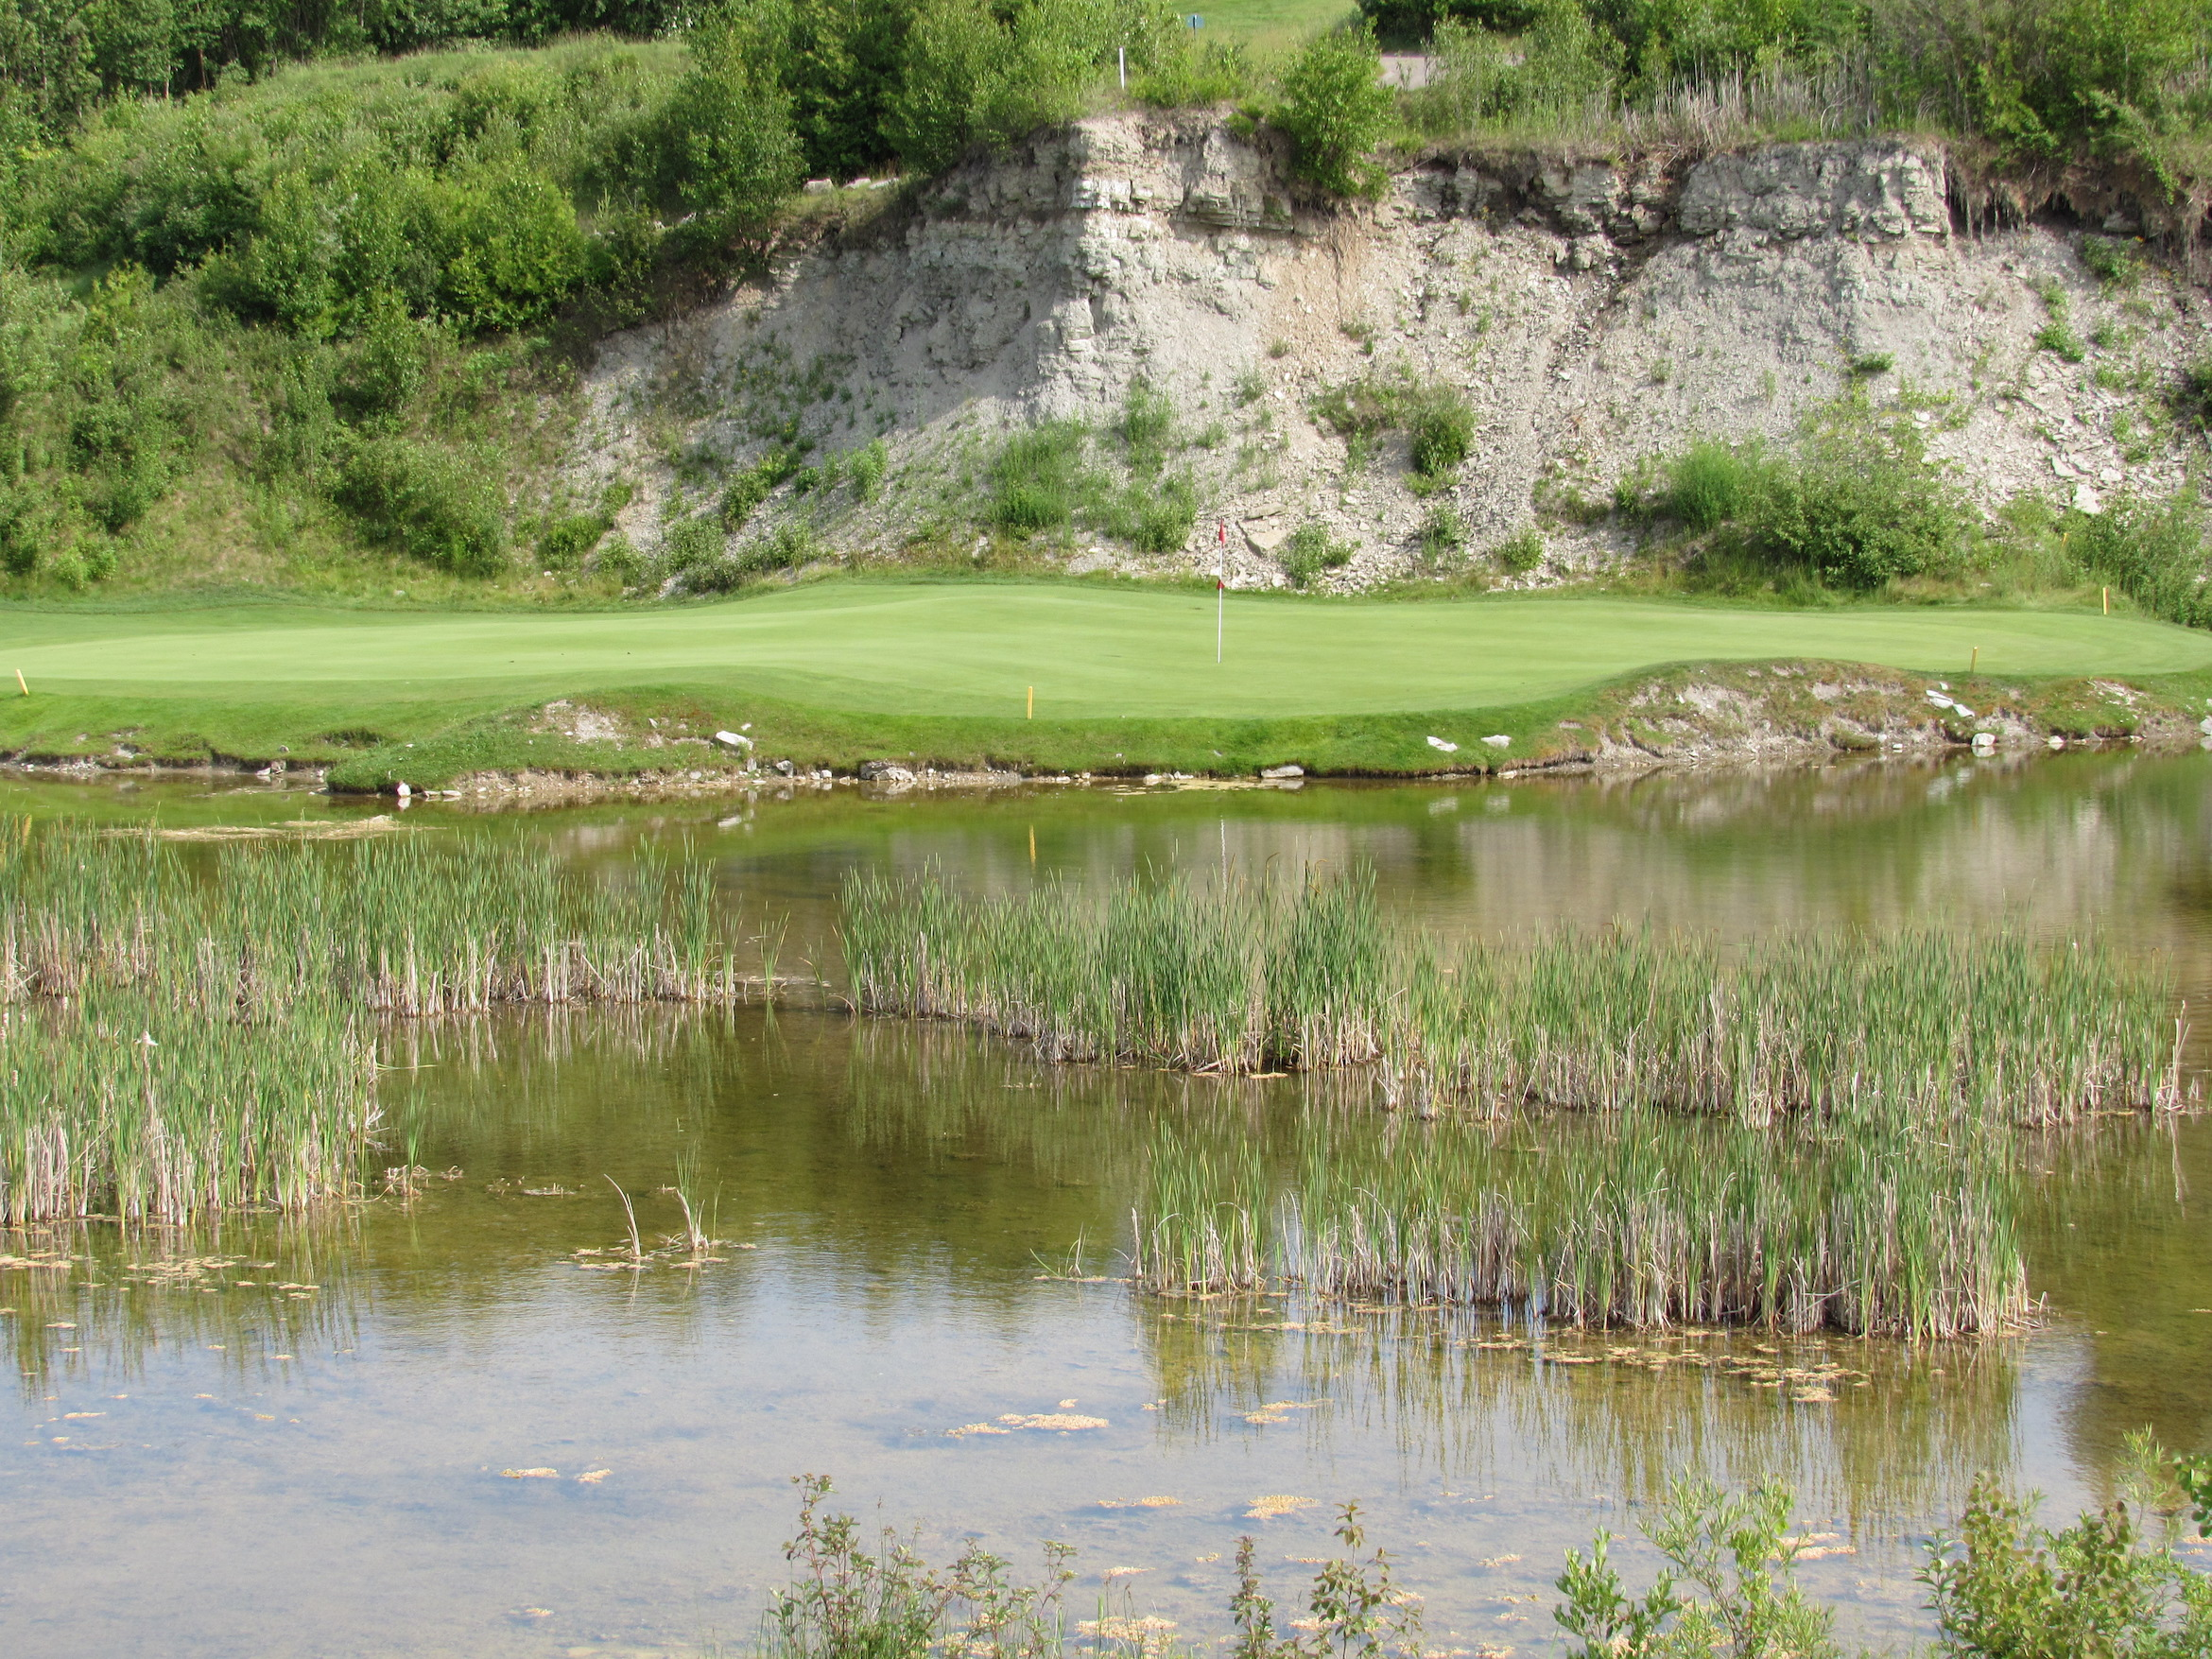 Bay Harbor Golf Club: Top of the mitten, top of the Michigan must-play list